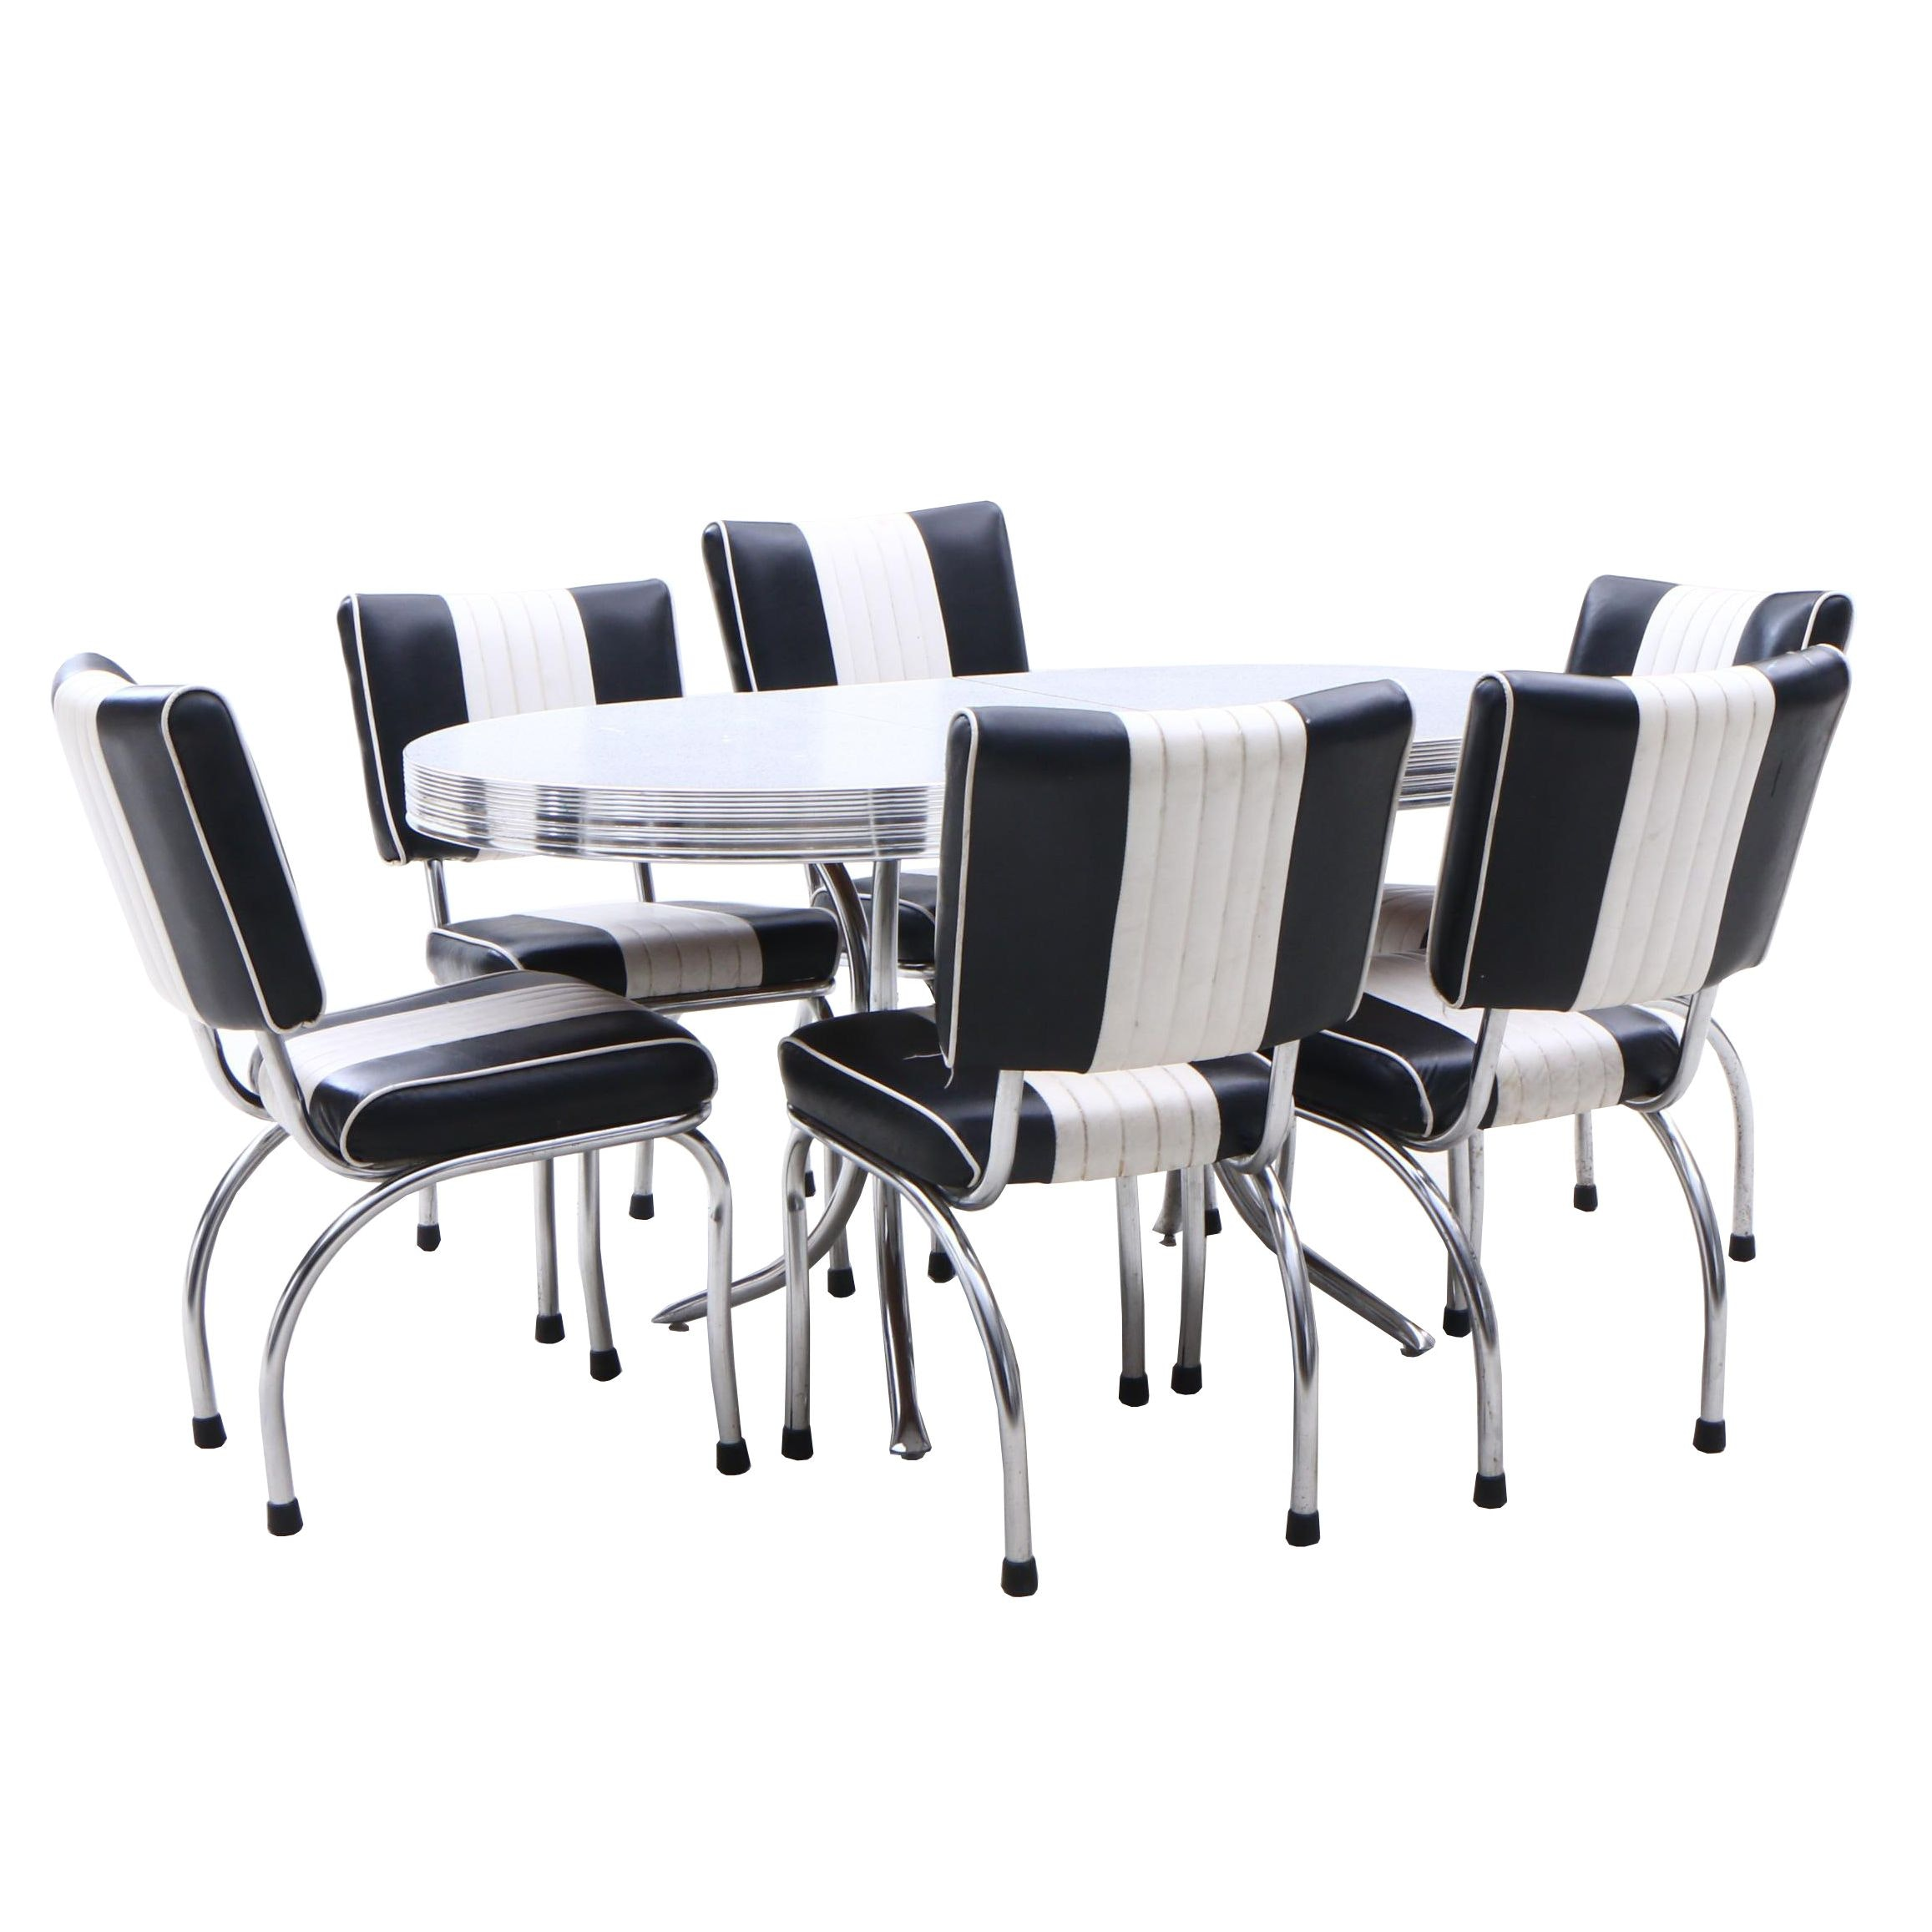 1950s Chrome Table and Six Chairs by Stoneville Furniture Company